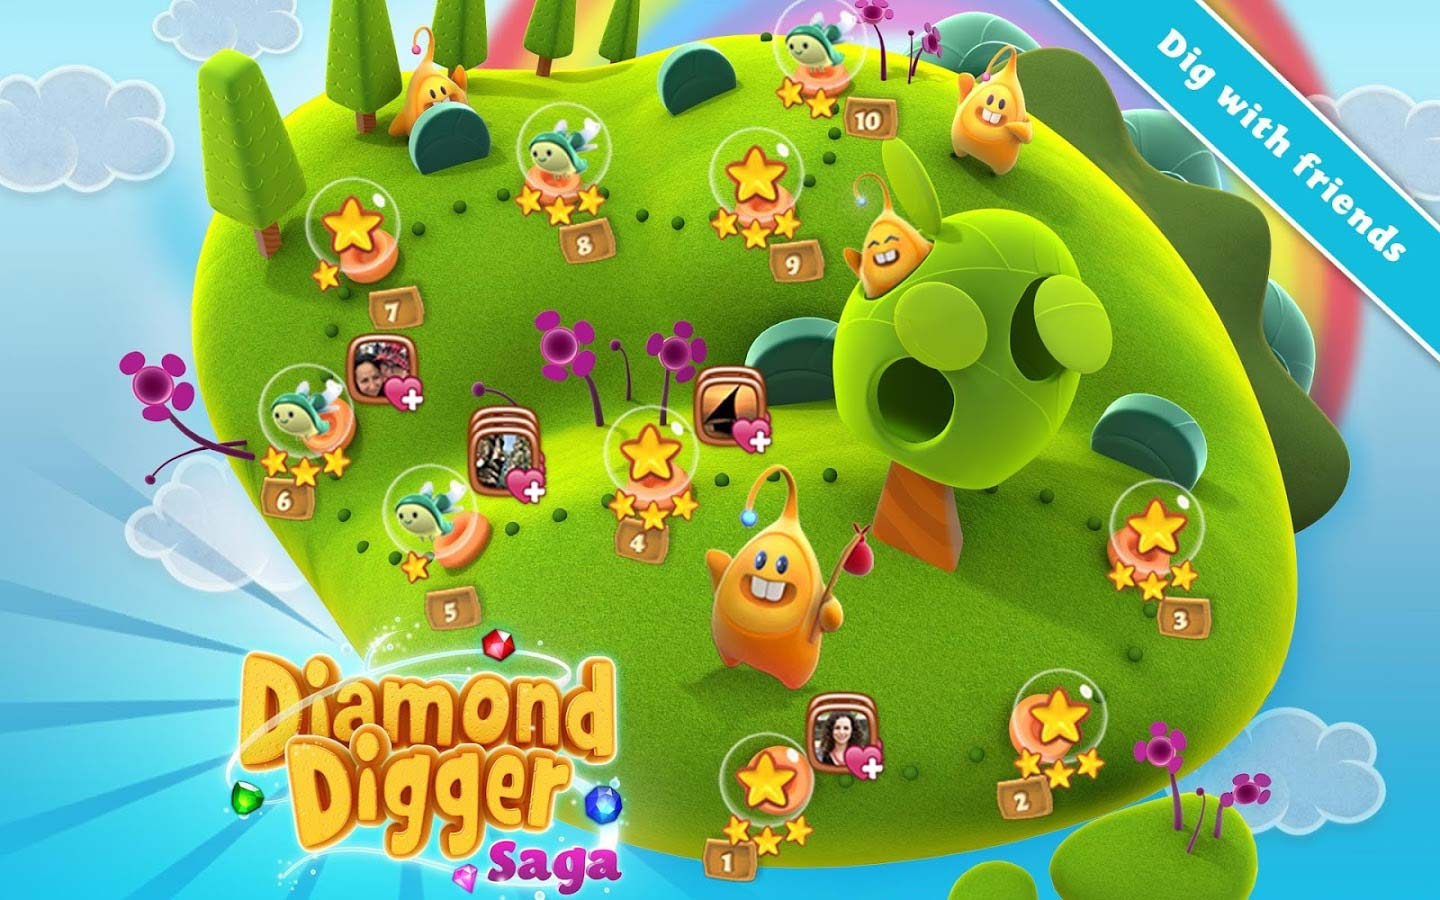 diamond-digger-saga-puzzle-game-like-candy-crush.jpg